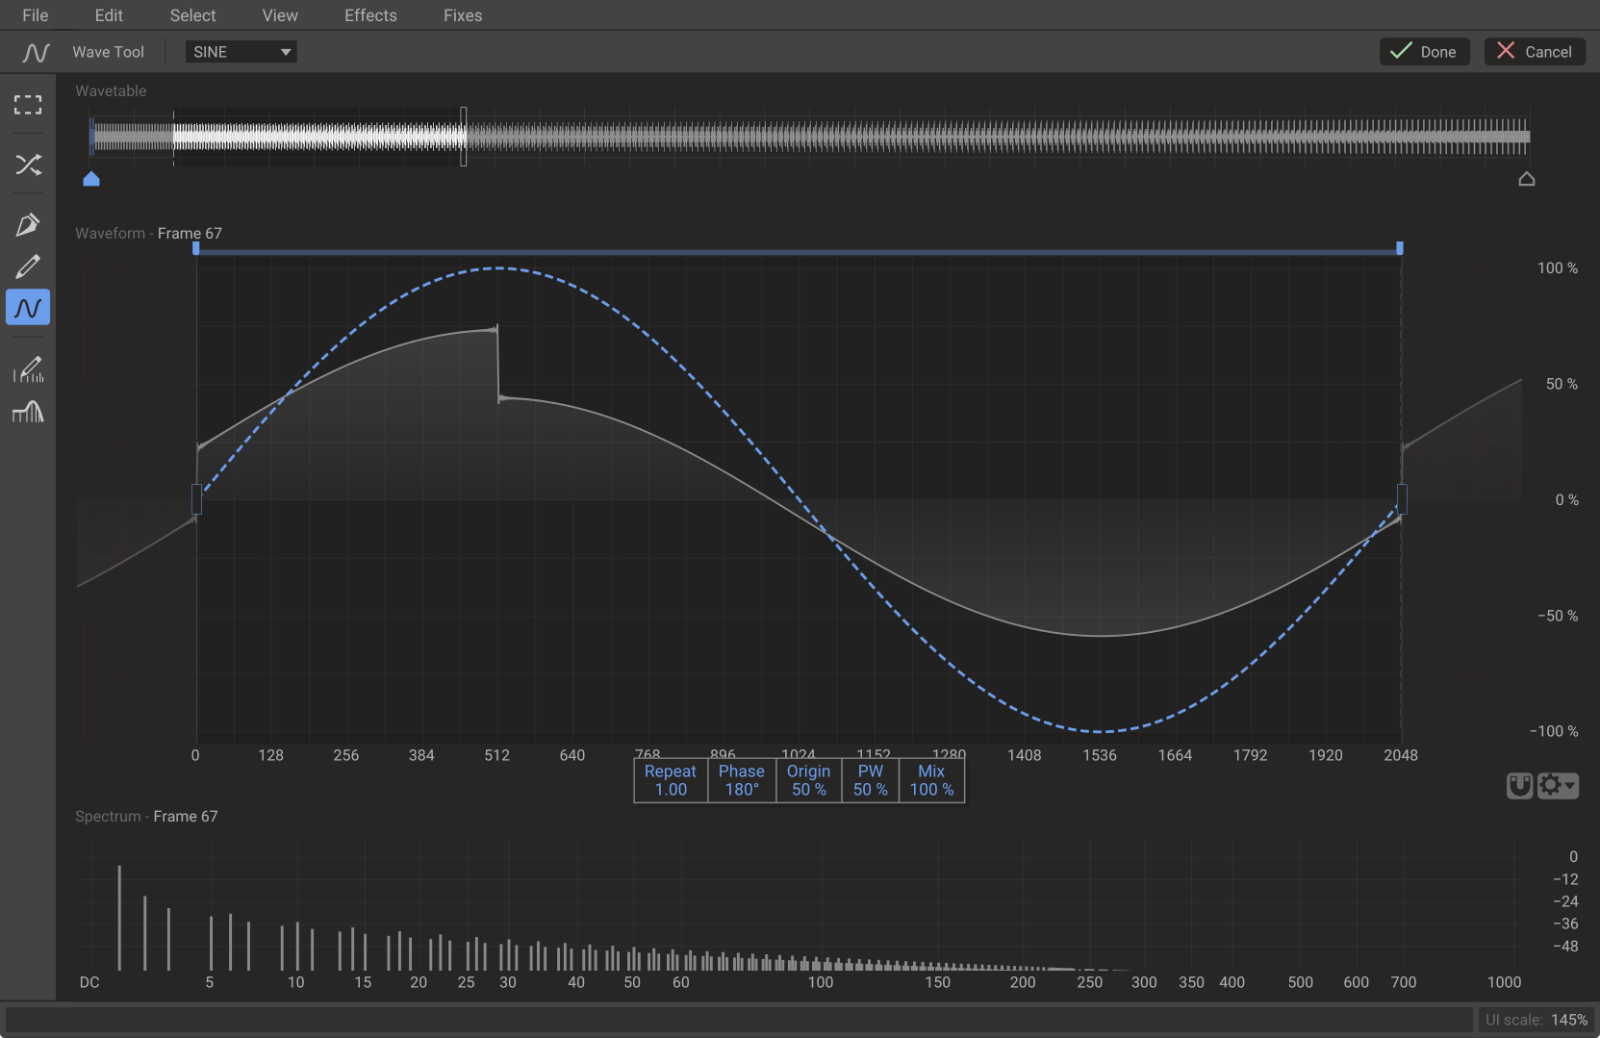 Wavetable Editor